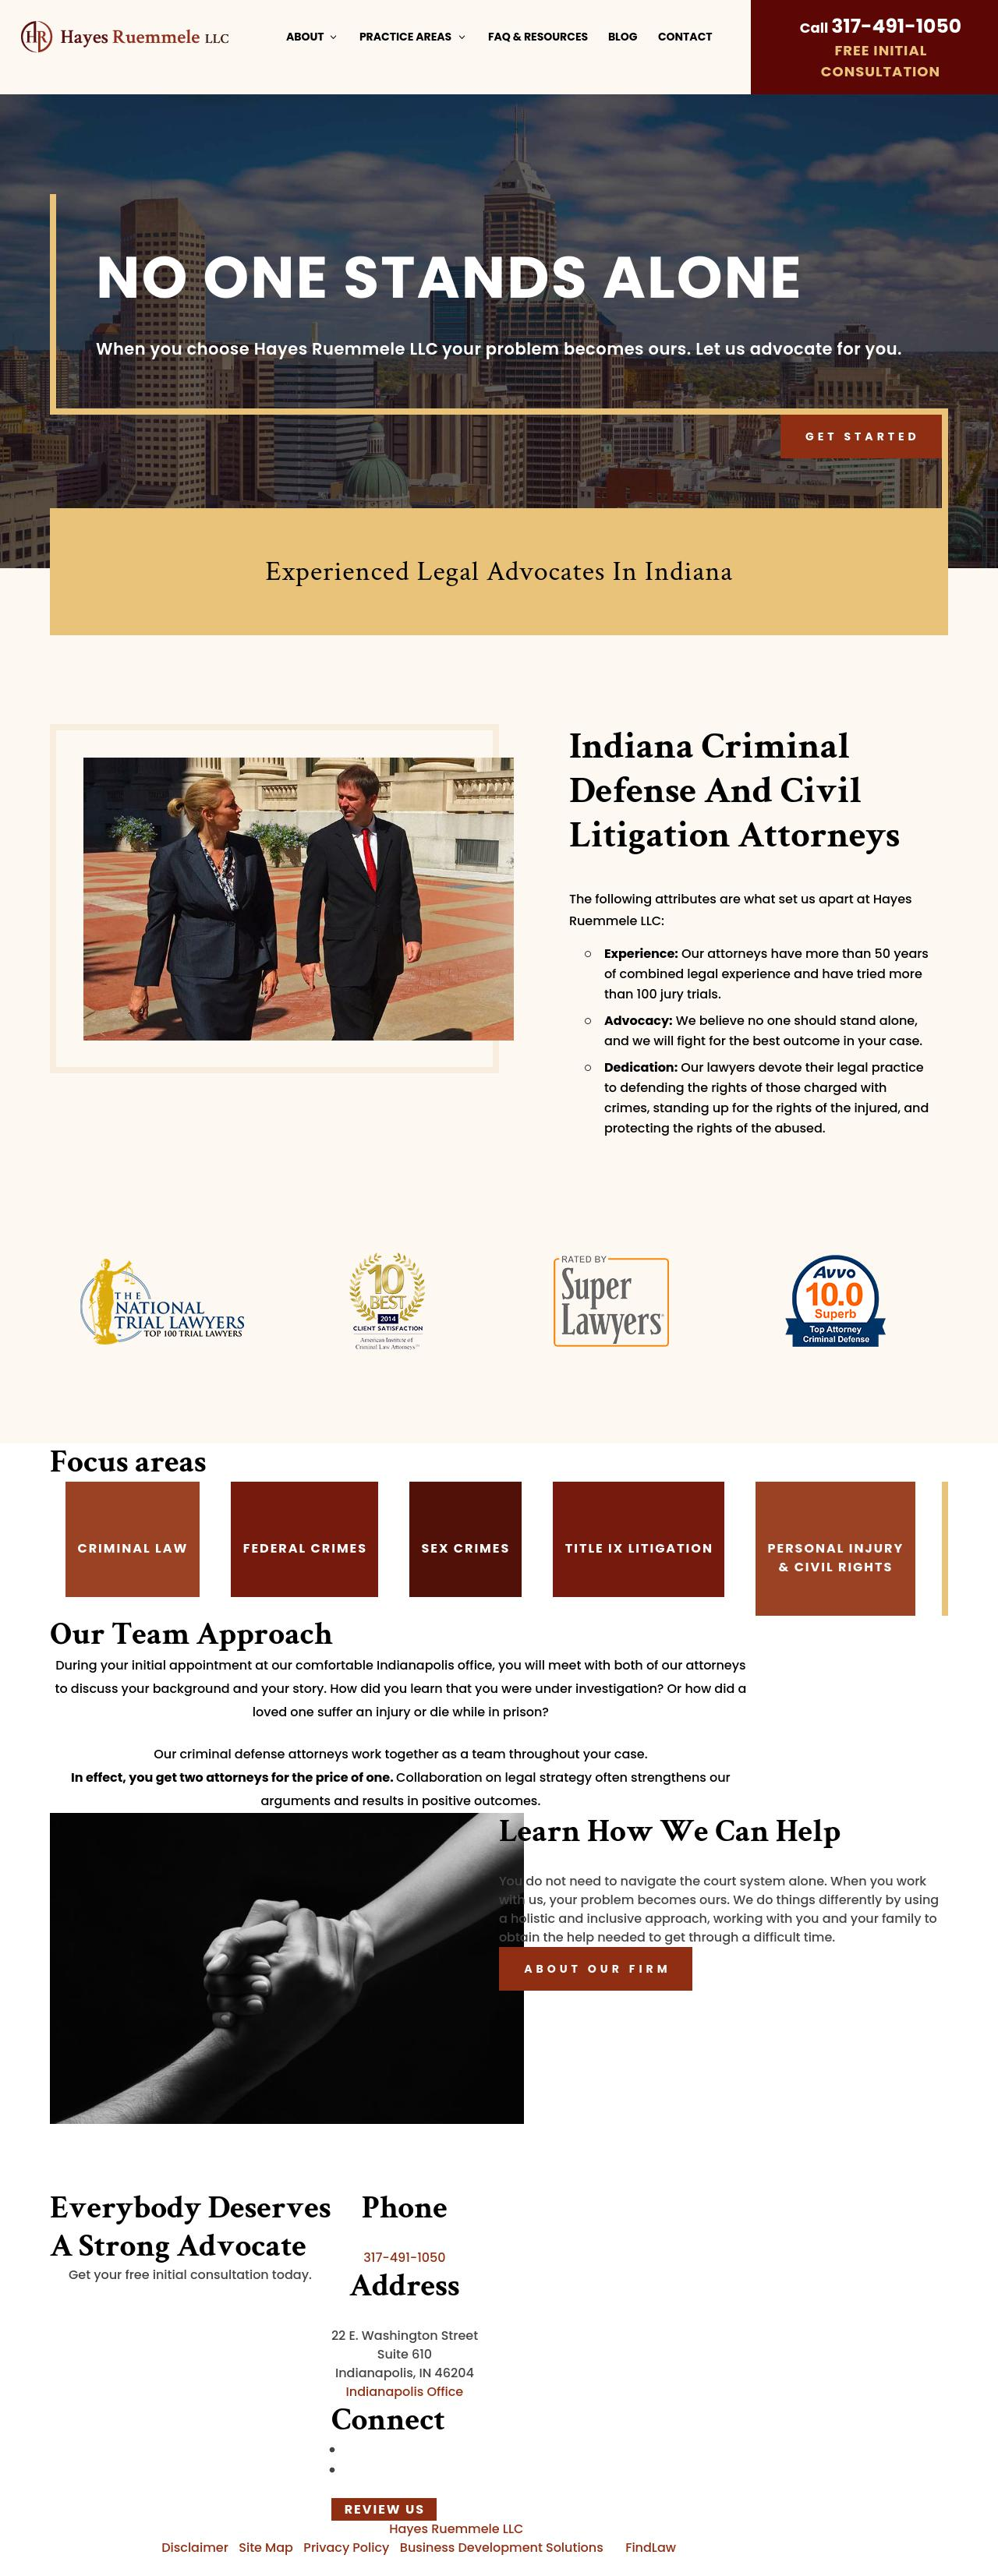 Hayes Ruemmele LLC - Indianapolis IN Lawyers